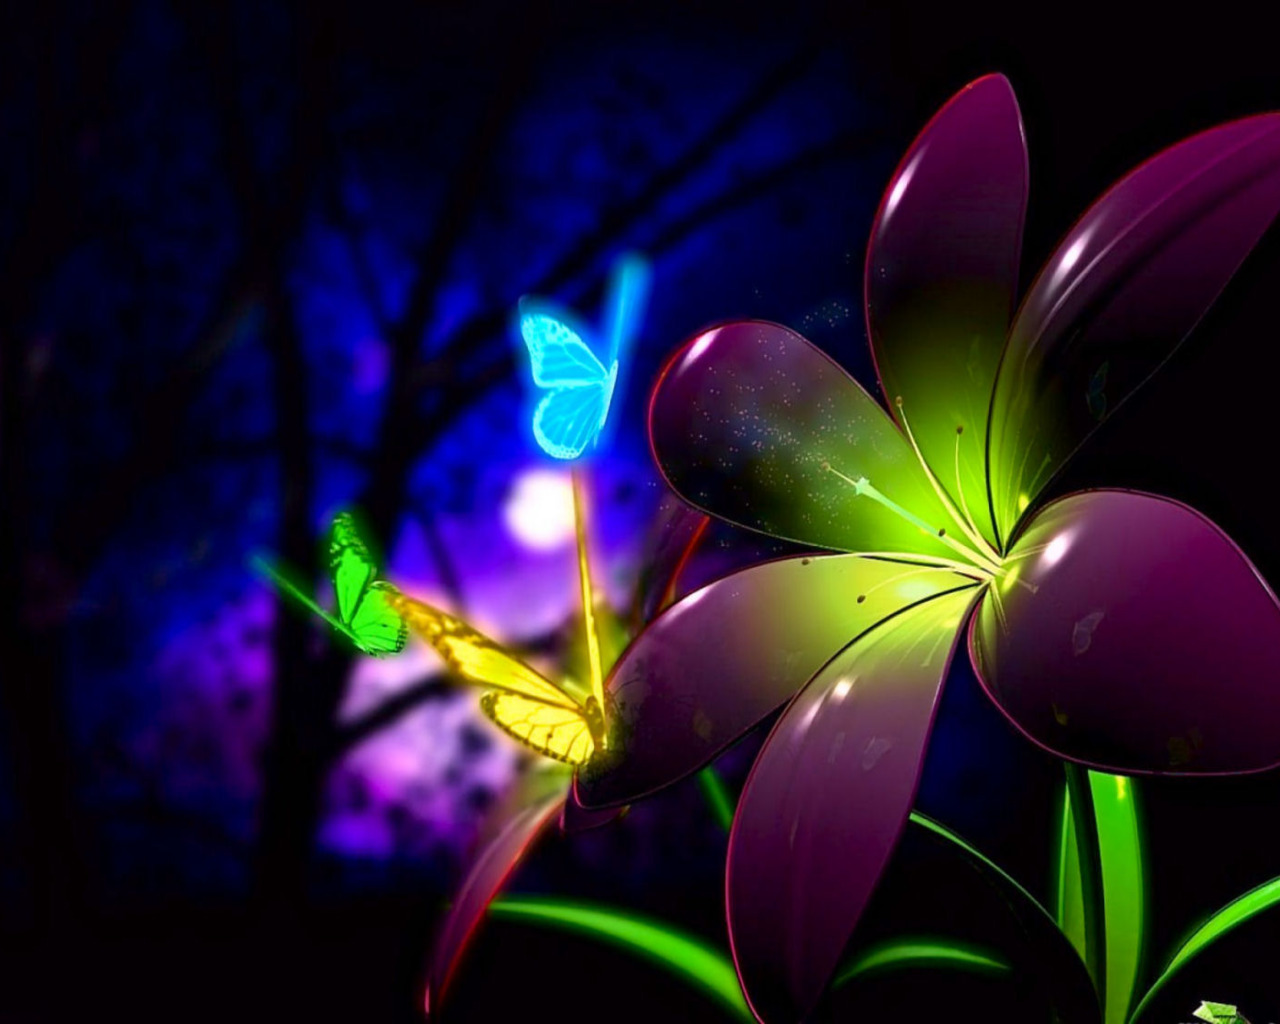 latest 3d wallpapers 2012 free download - 3D Name Wallpapers - Latest News